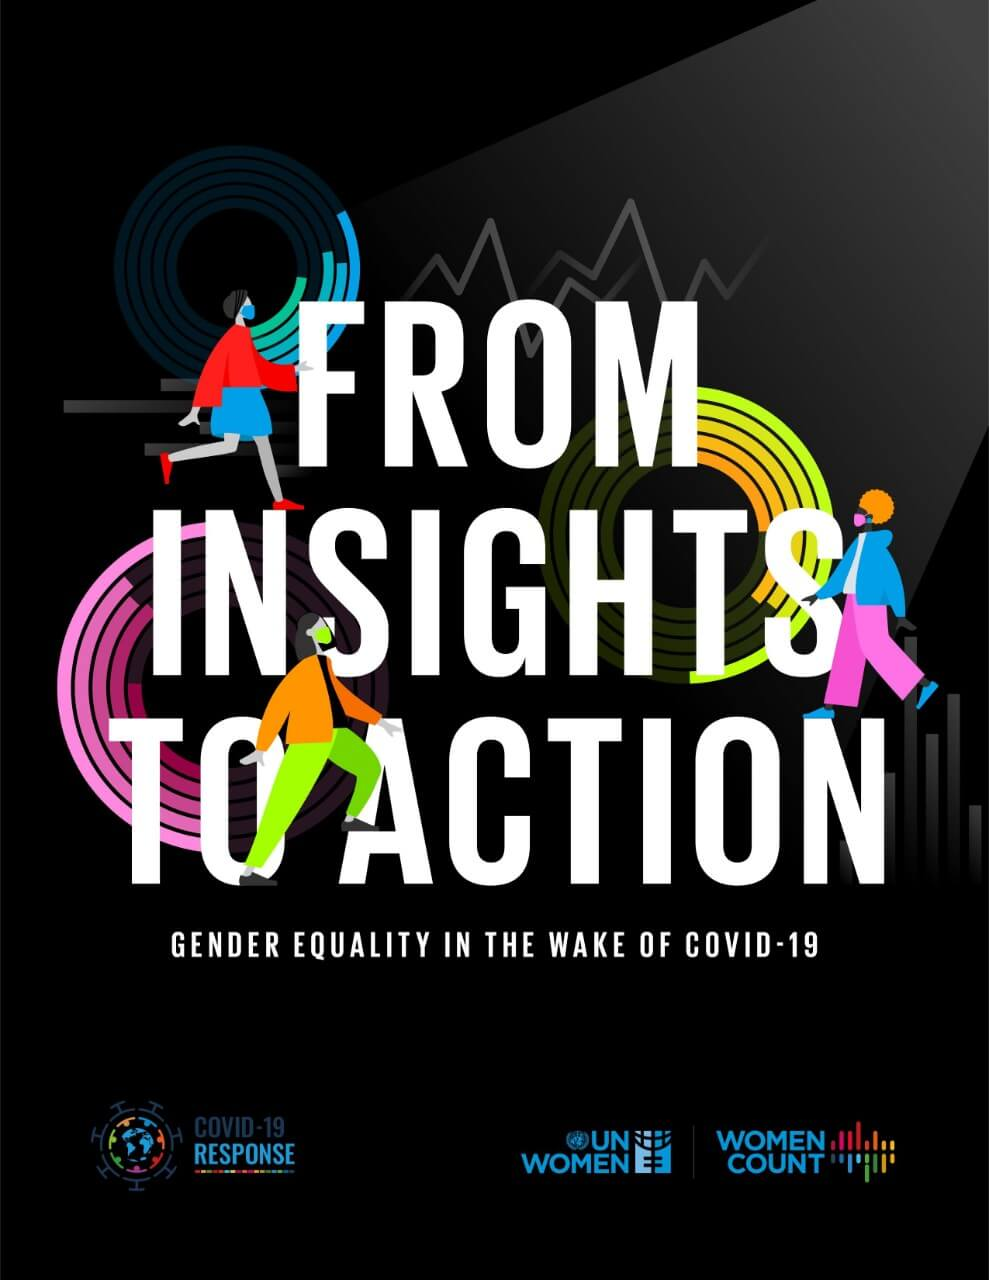 From insights to action: Gender equality in the wake of COVID-19